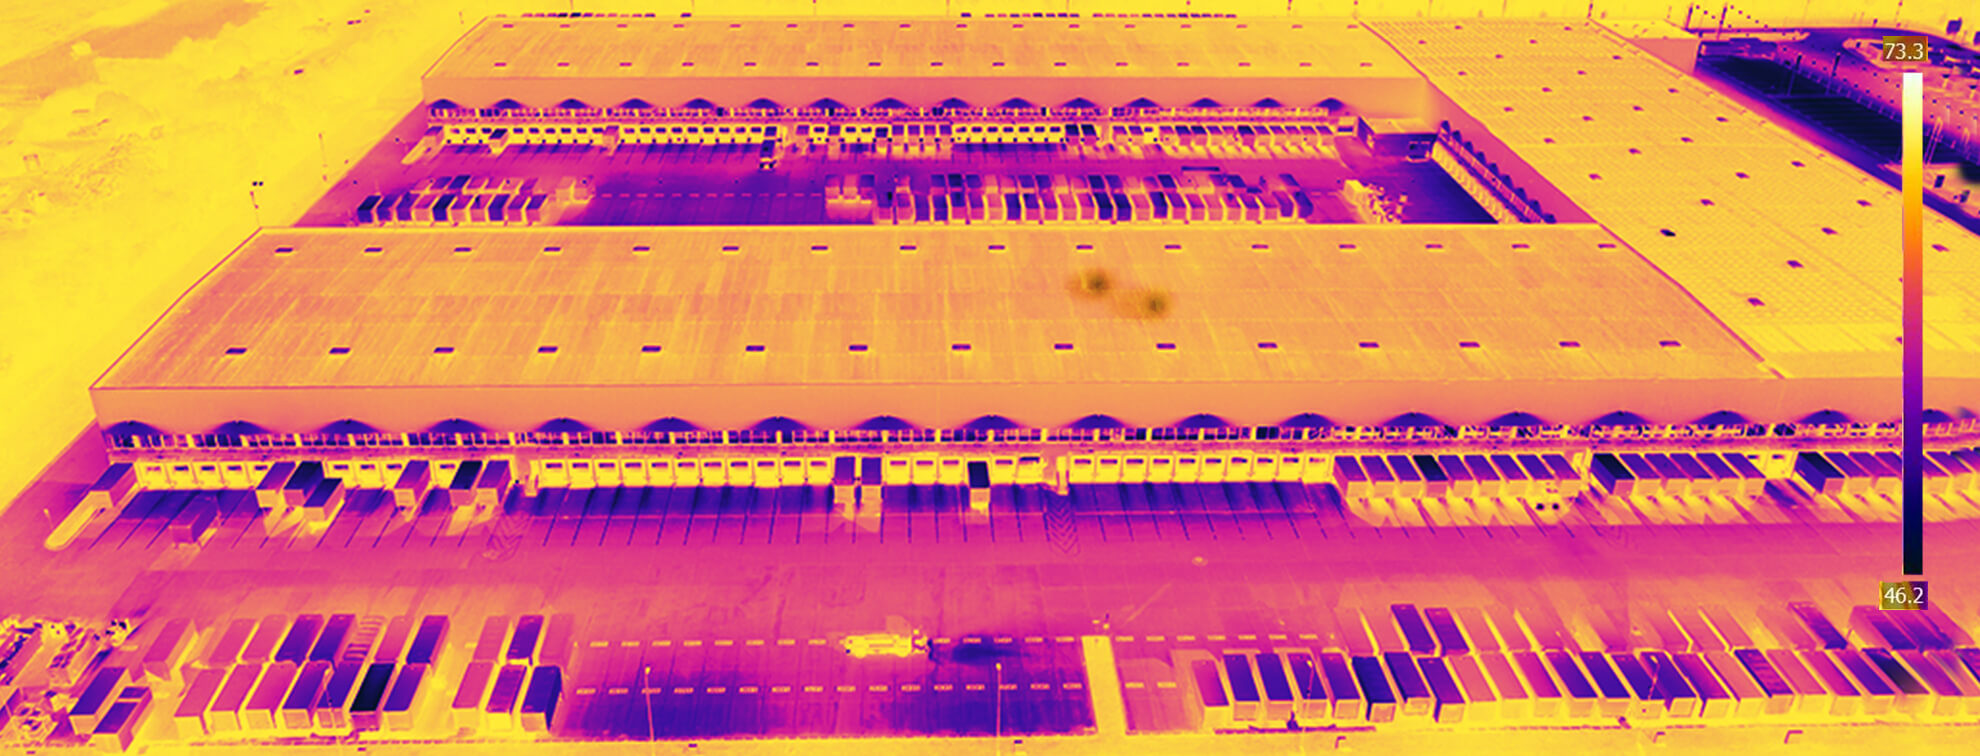 Thermal Roof Scanning